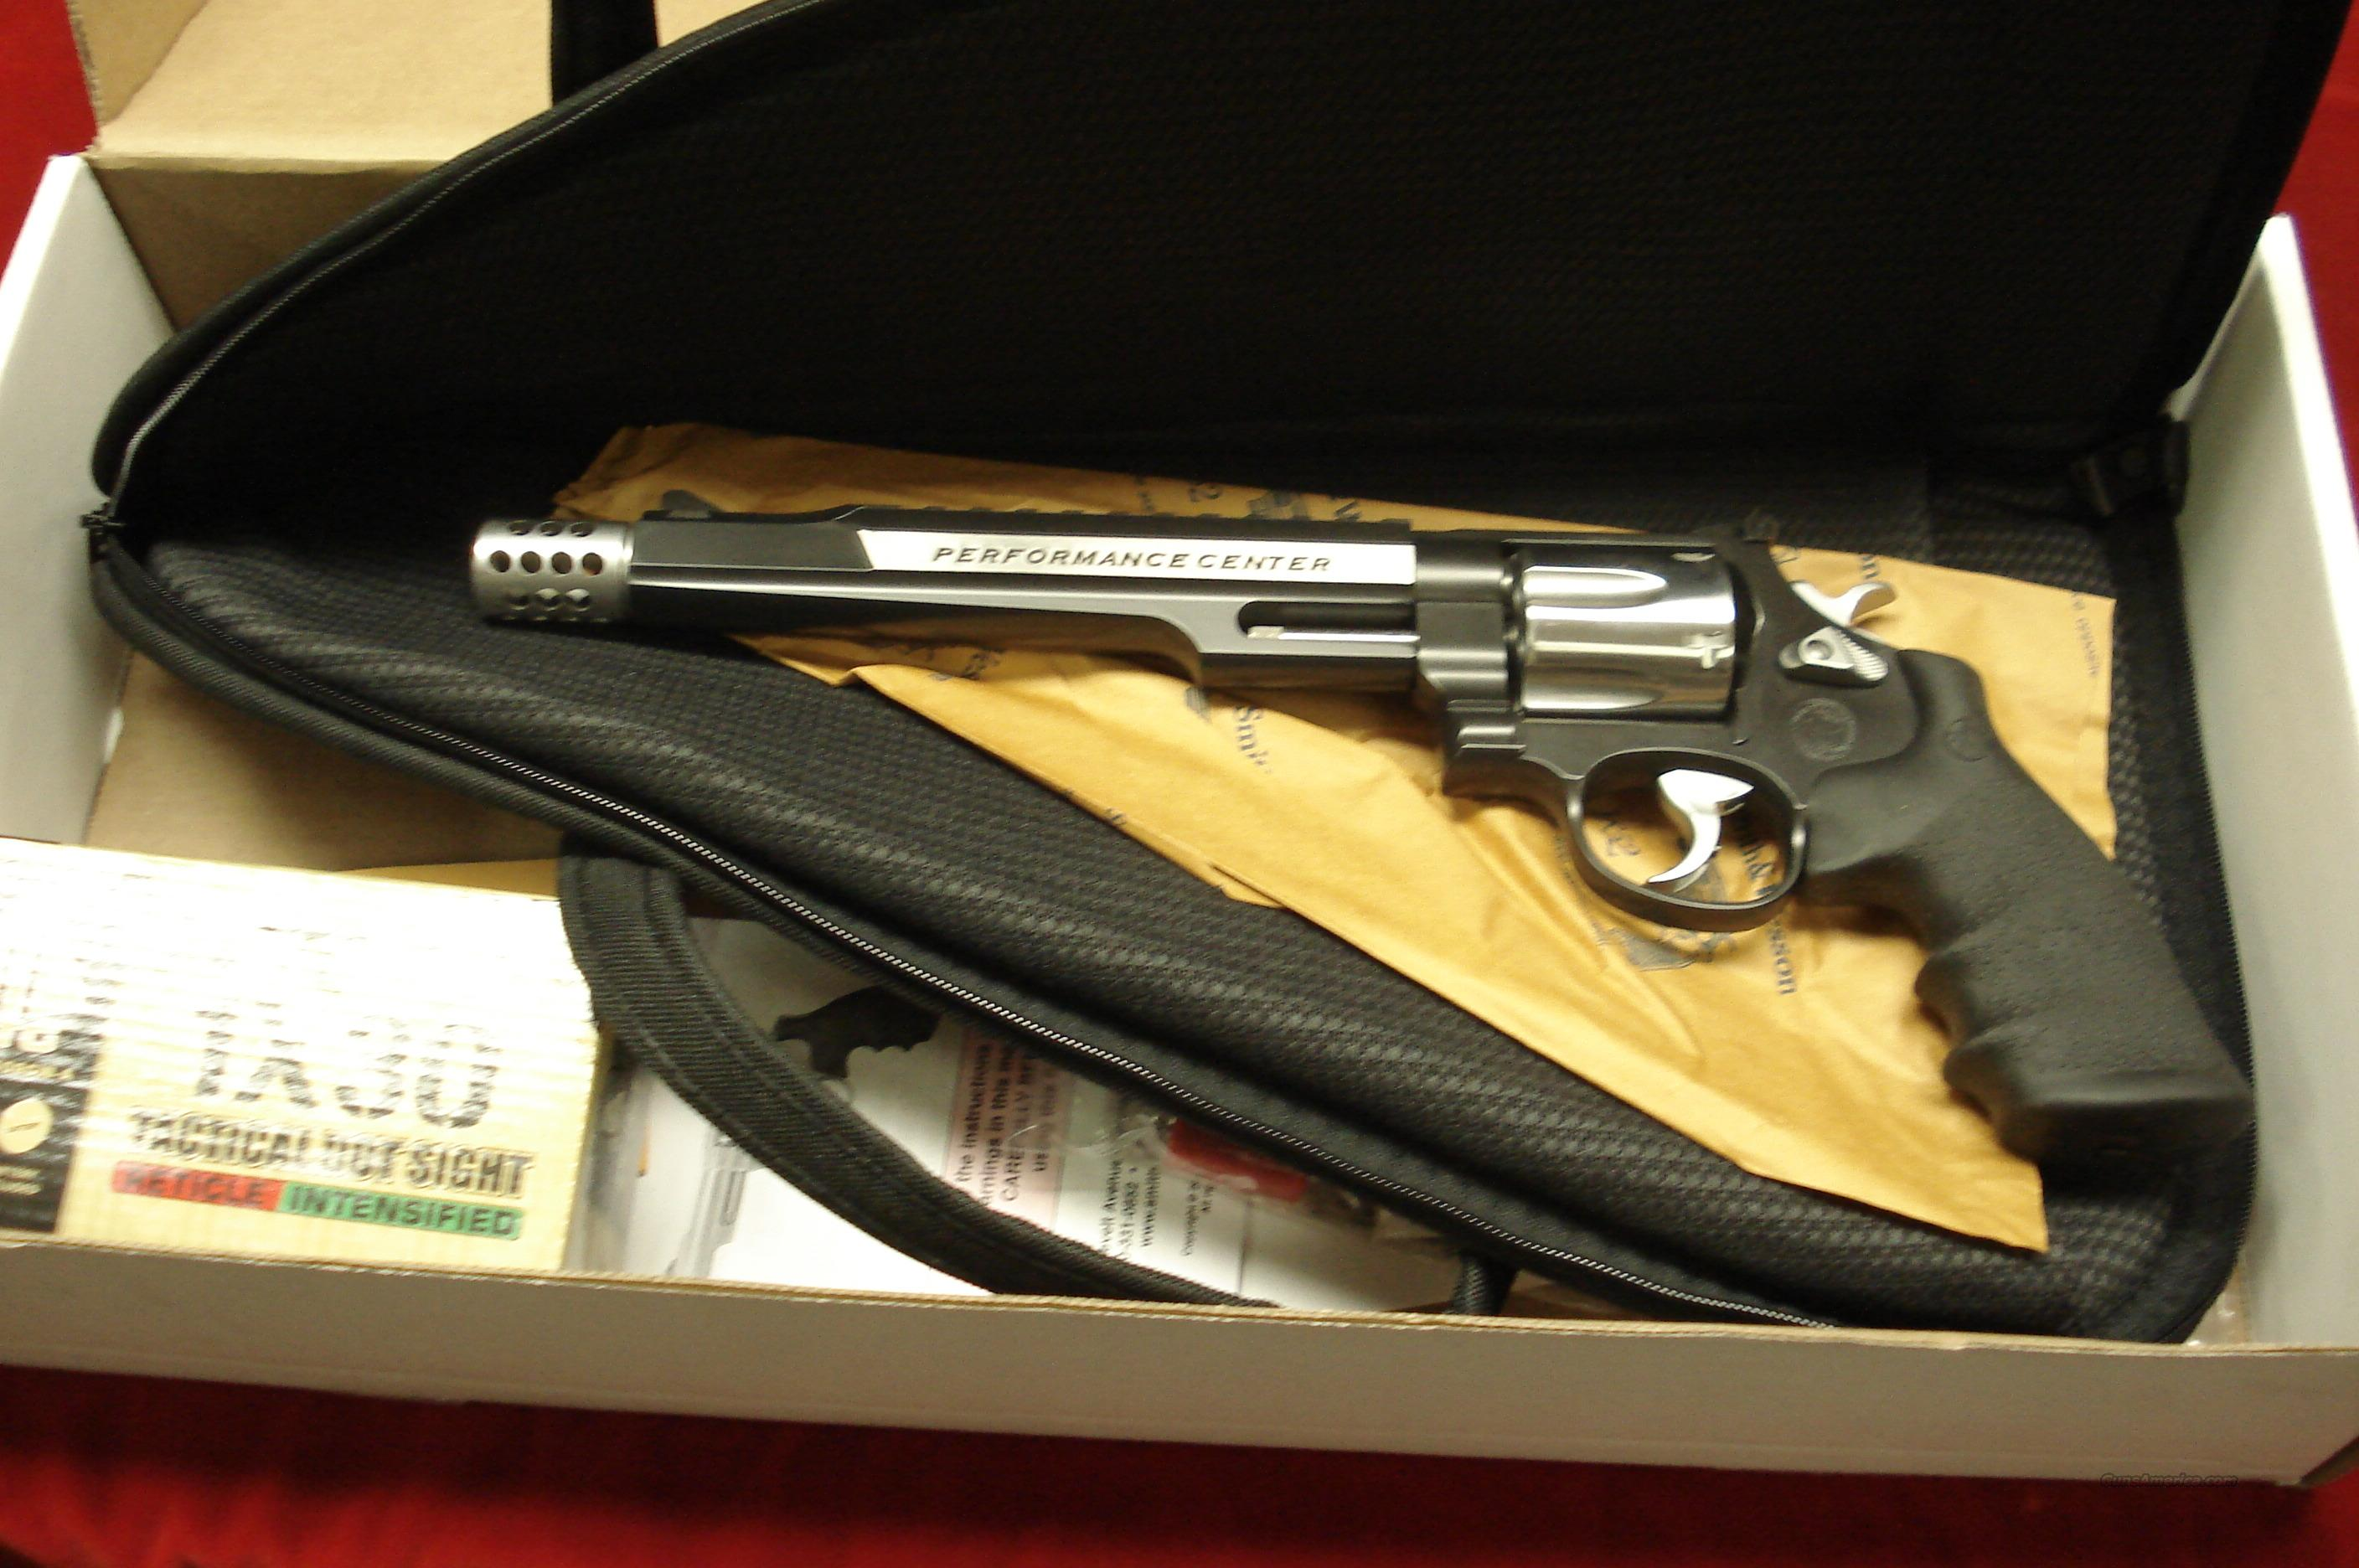 "SMITH & WESSON PC 629 HUNTER .44 MAG 7.5"" BARREL TWO TONE STAINLESS NEW (170318)    Guns > Pistols > Smith & Wesson Revolvers > Performance Center"